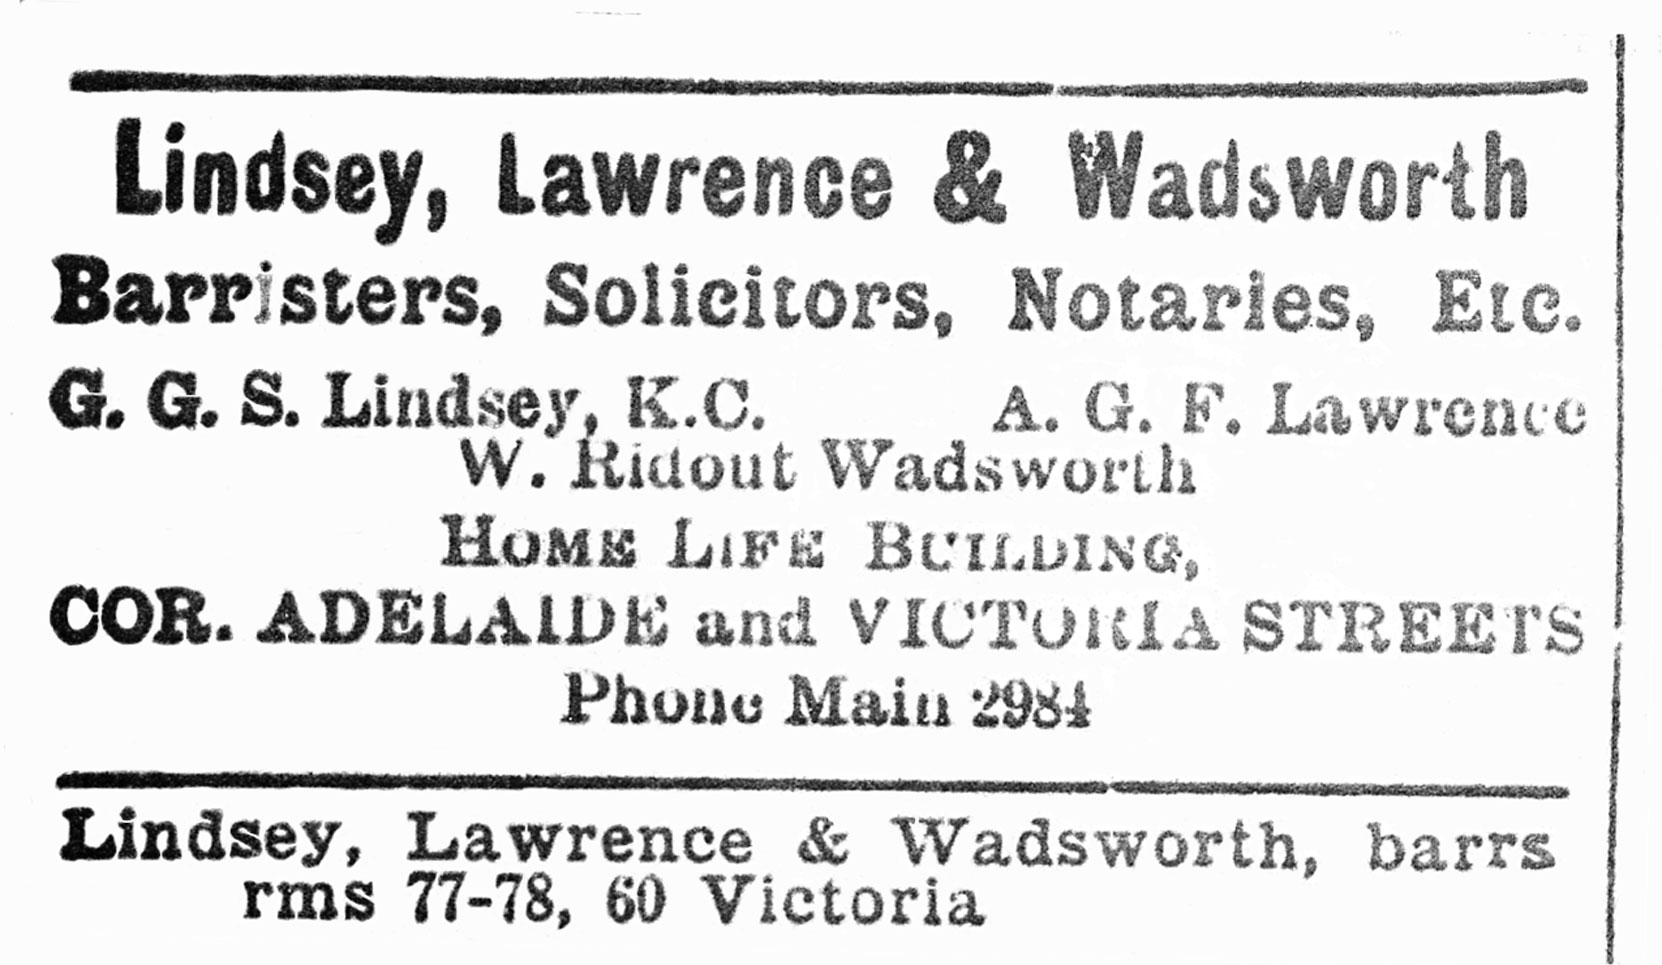 Toronto Directory listing for the law firm of Lindsey, Lawrence & Wadsworth, 1904